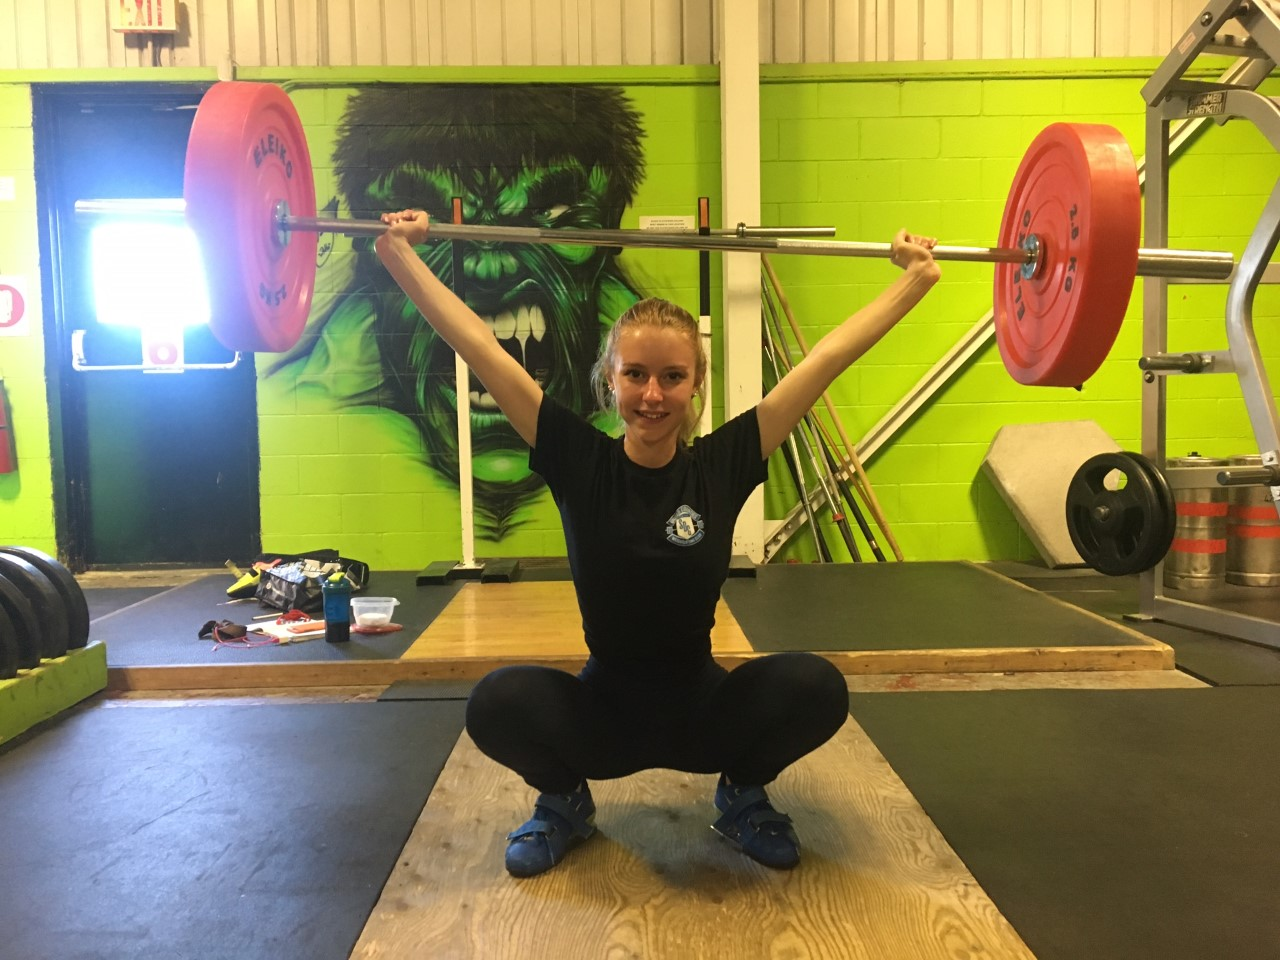 Local weightlifter breaks provincial record